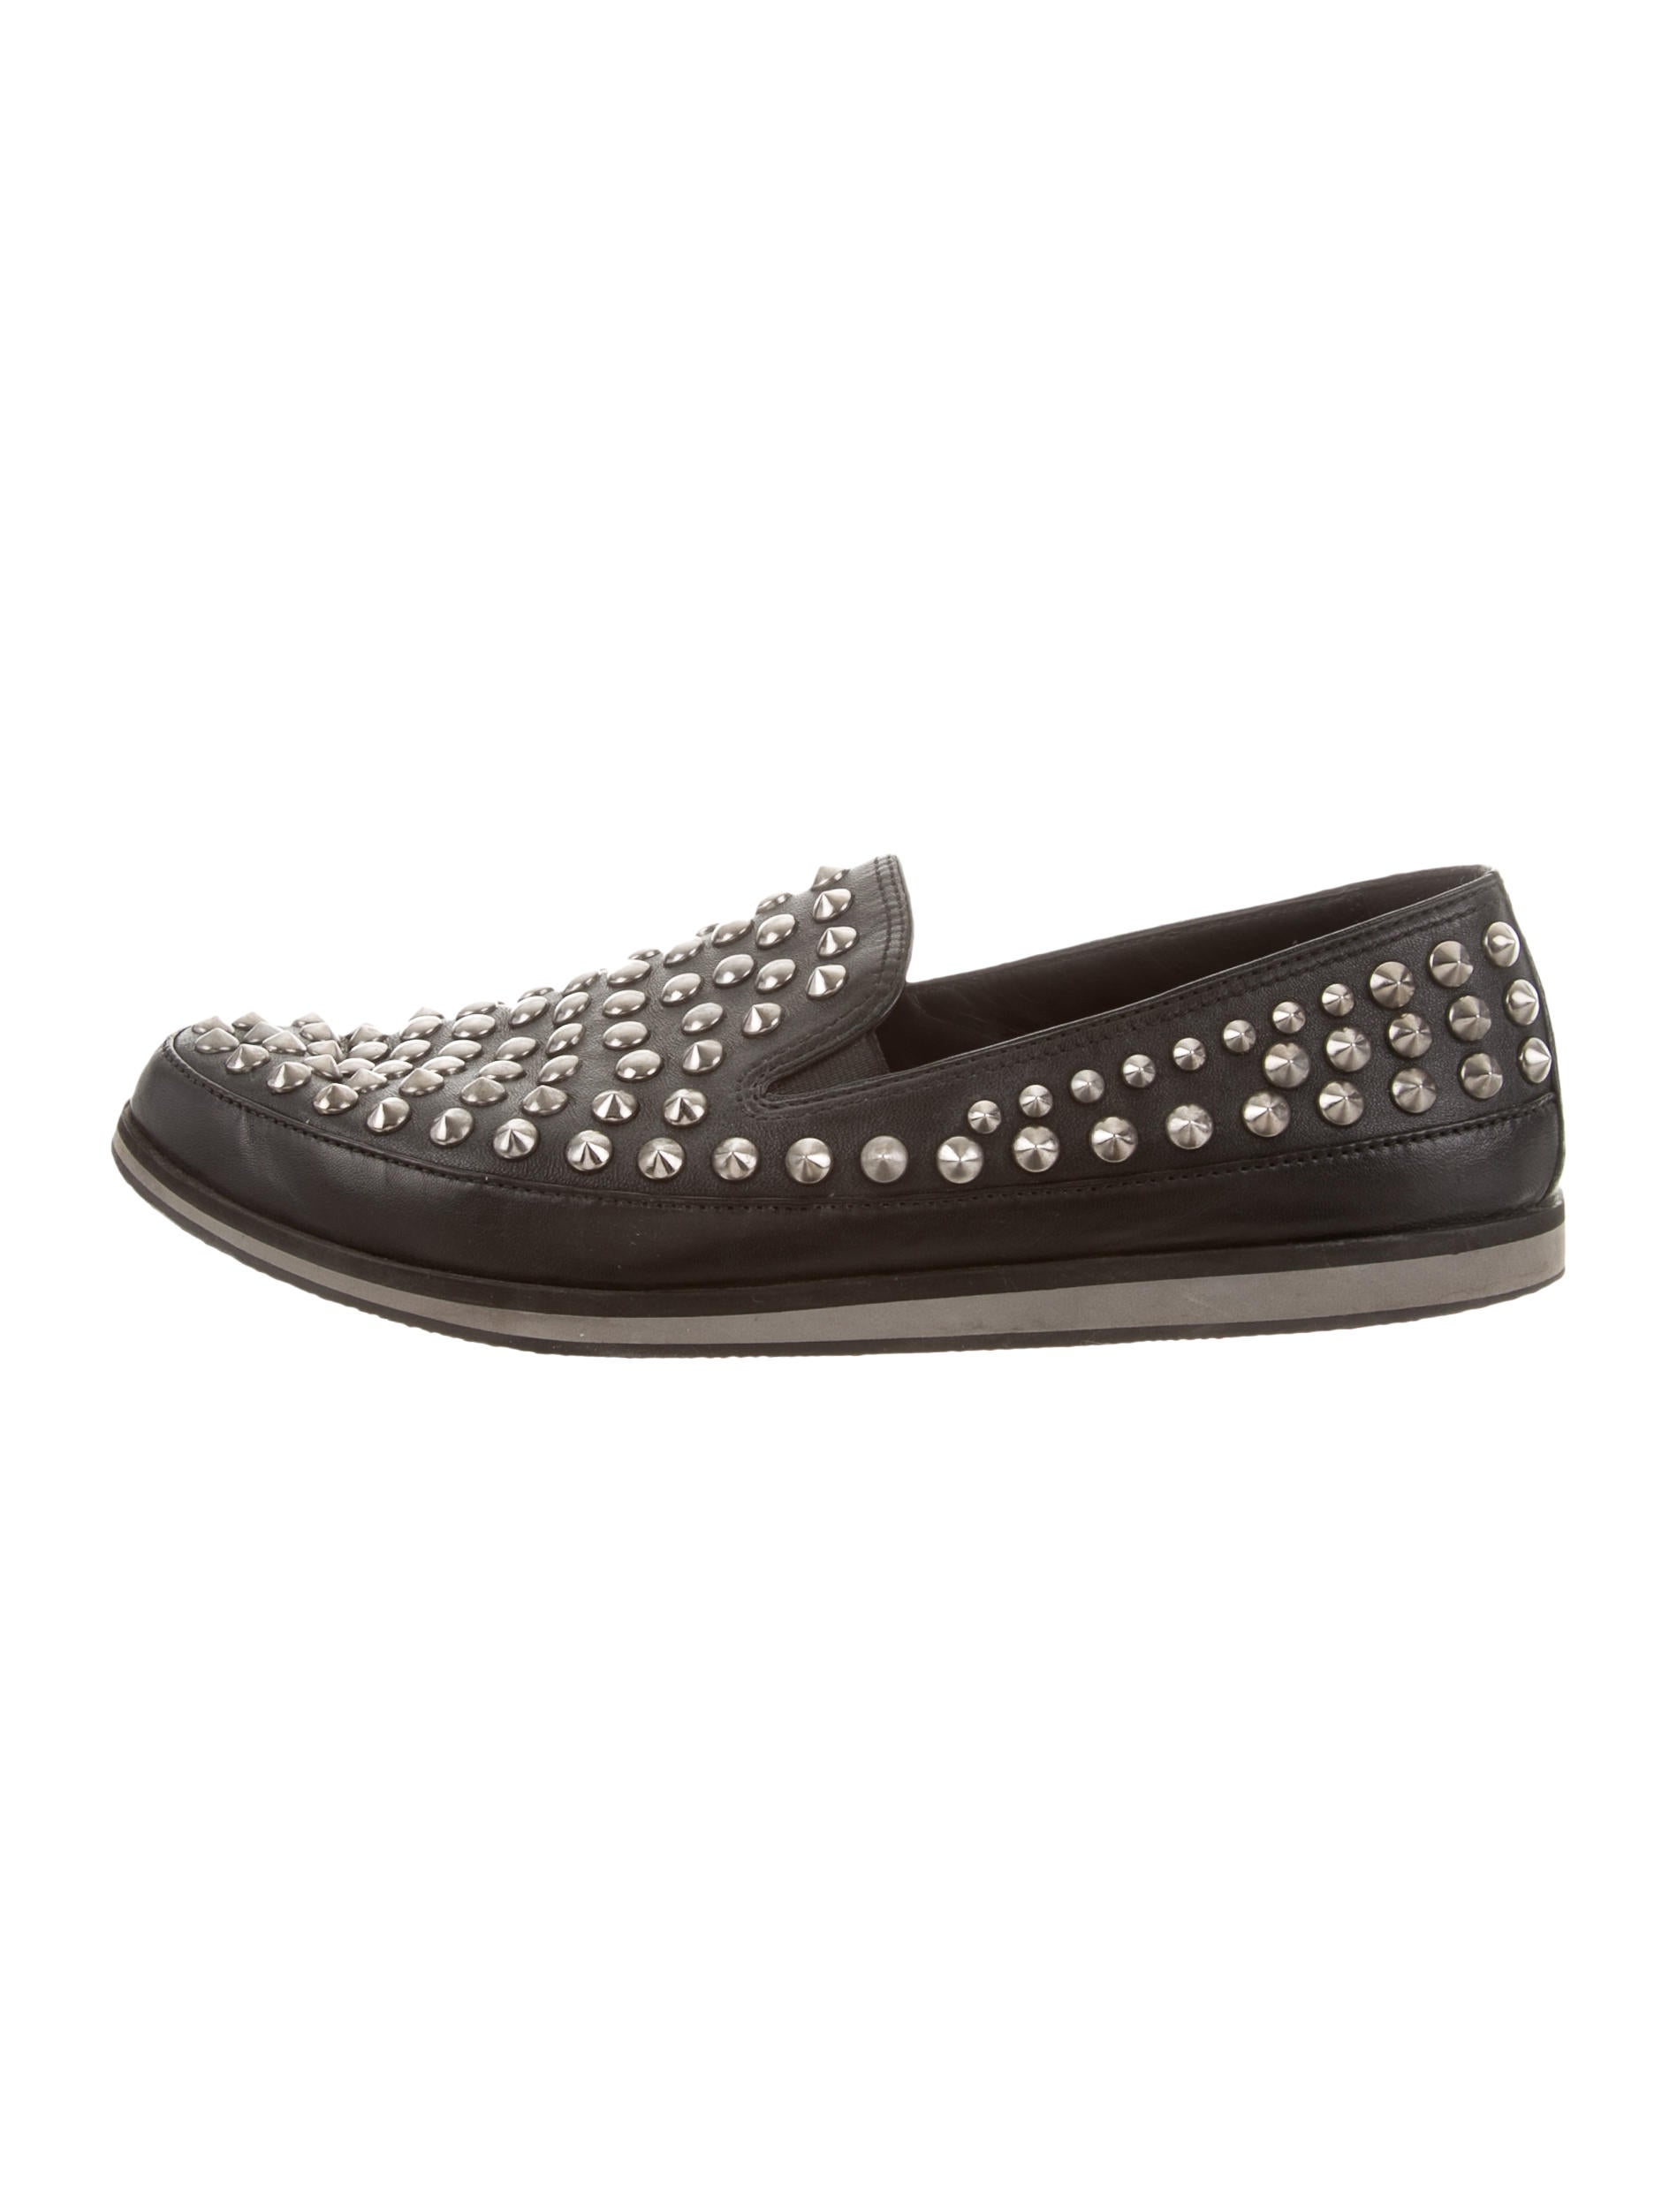 Prada Sport Spike-Embellished Slip-On Sneakers buy cheap release dates free shipping latest collections free shipping genuine o9vrX